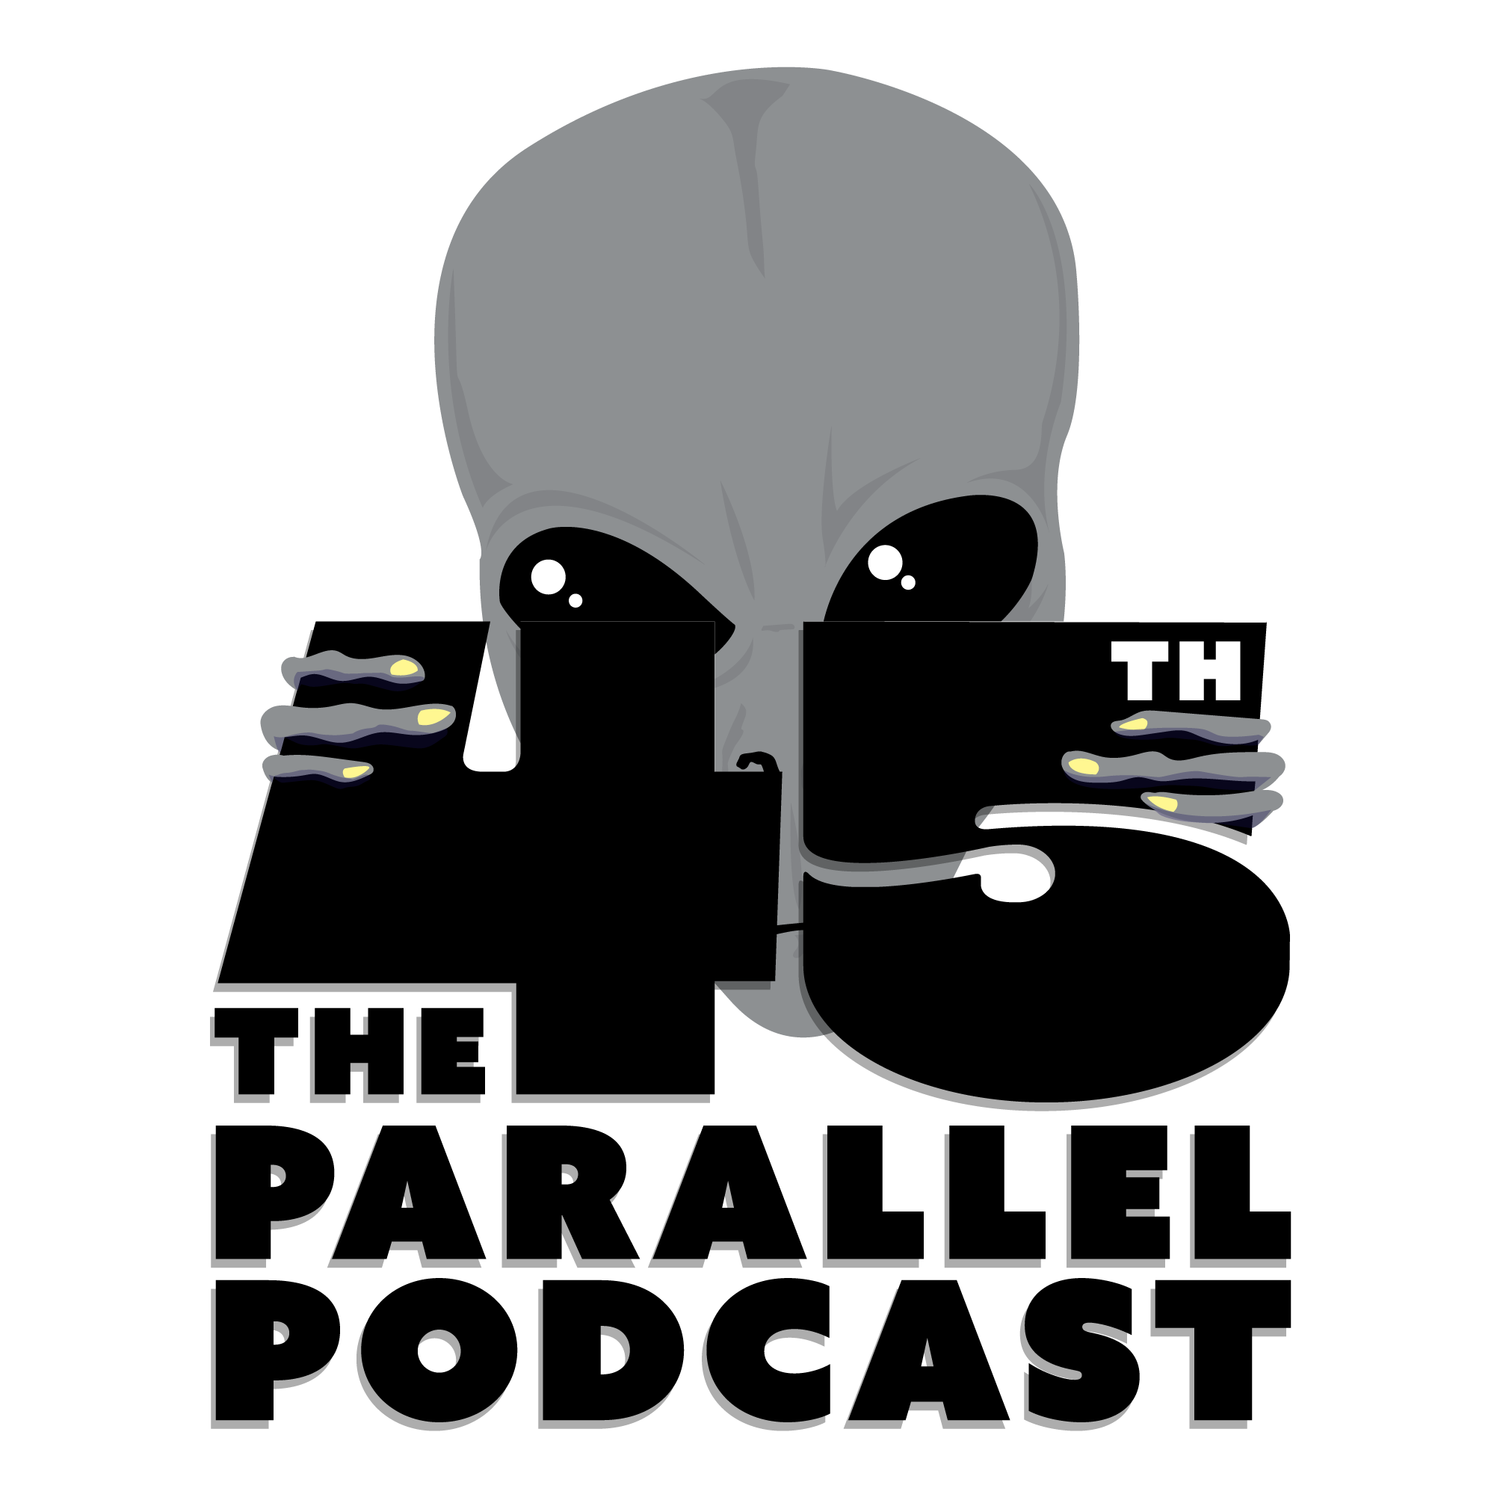 the 45th Parallel Podcast